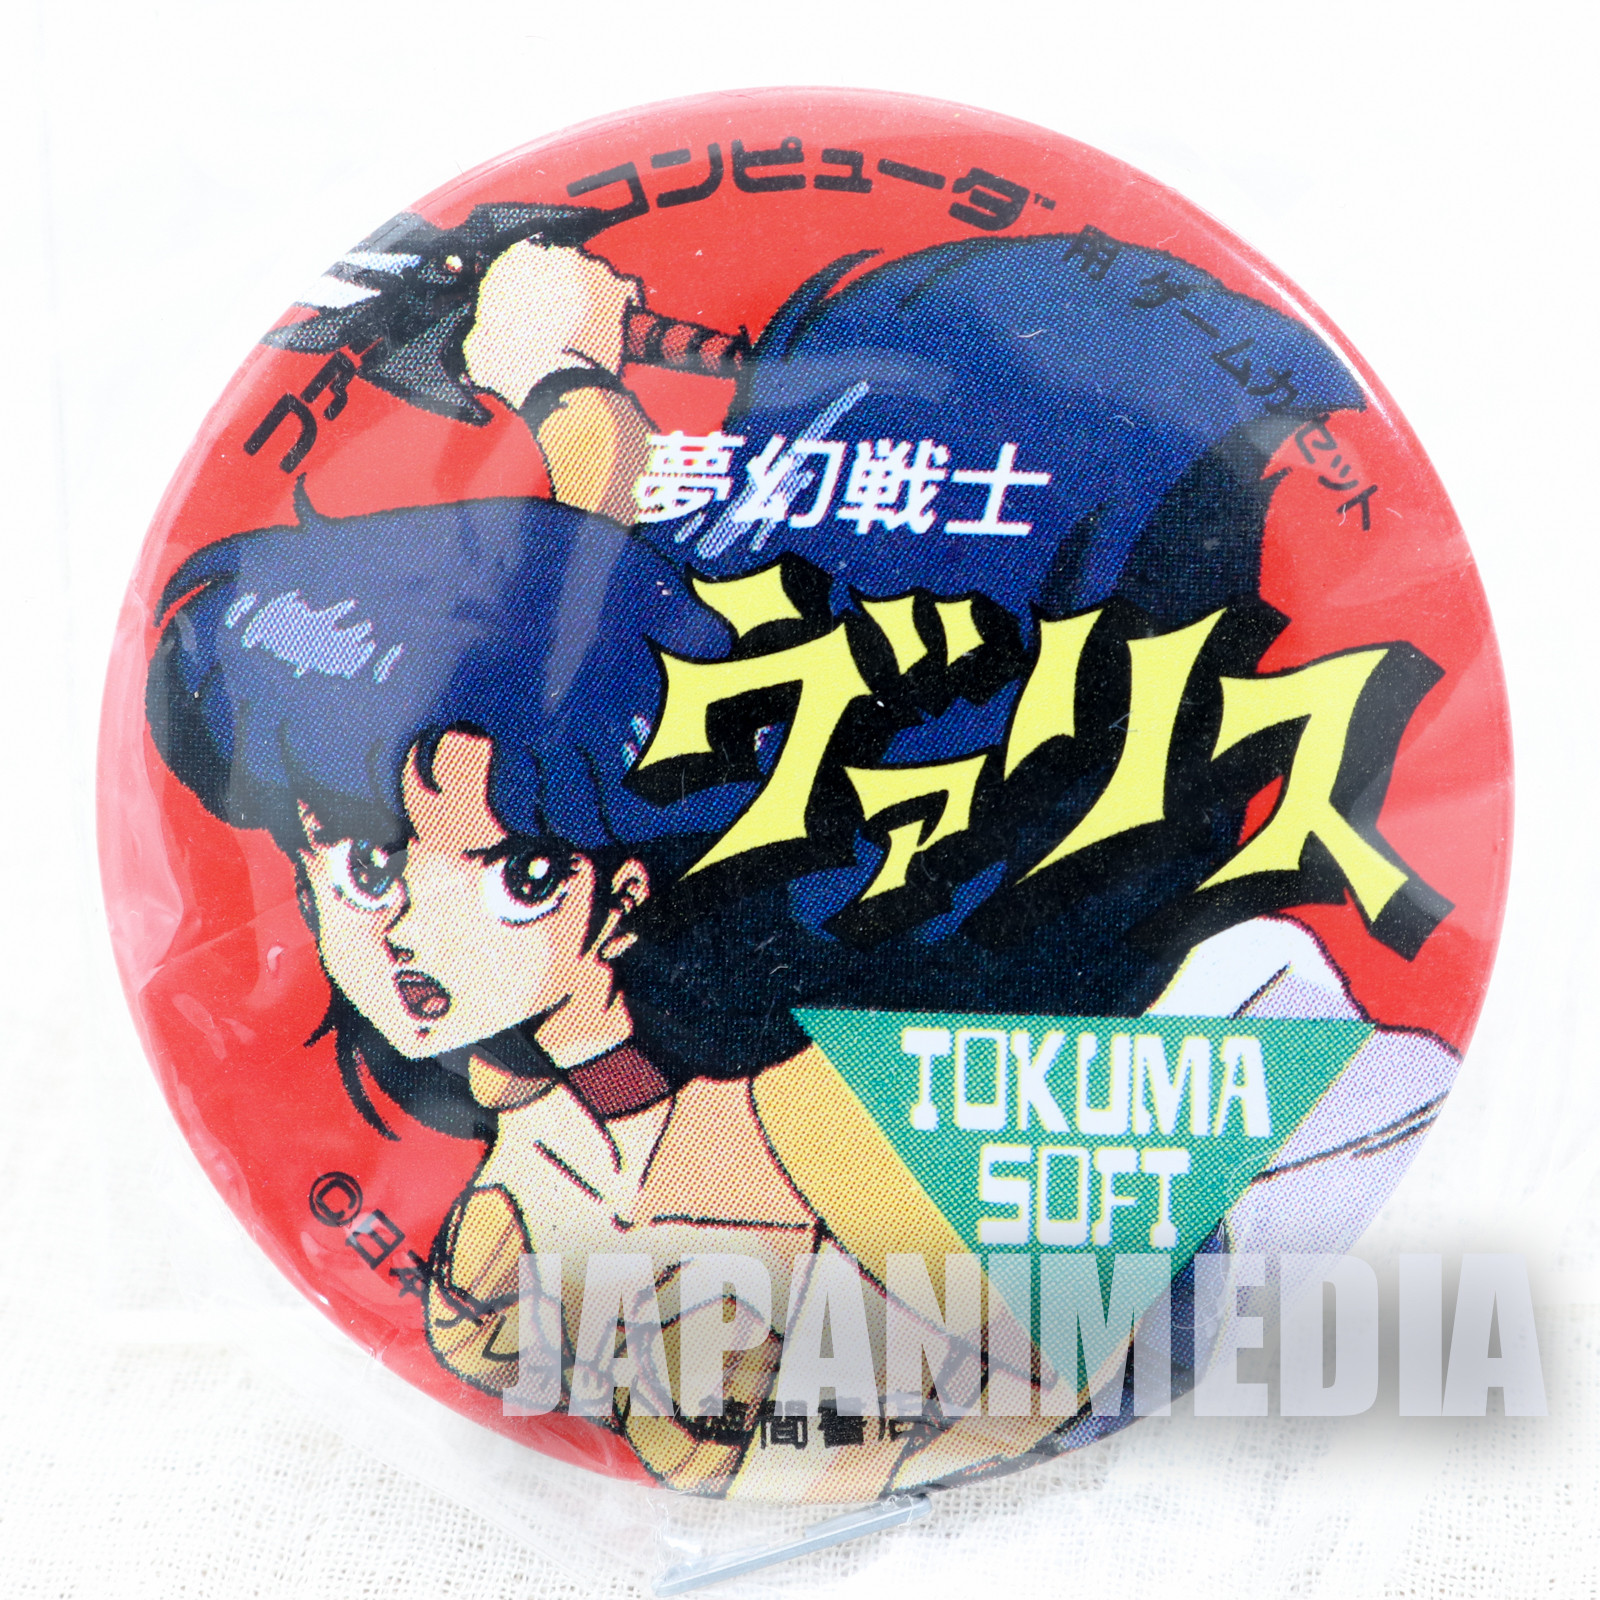 RARE! Fantasm Soldier Valis Yuko Aso Famicom Promotion Button Can Badge JAPAN